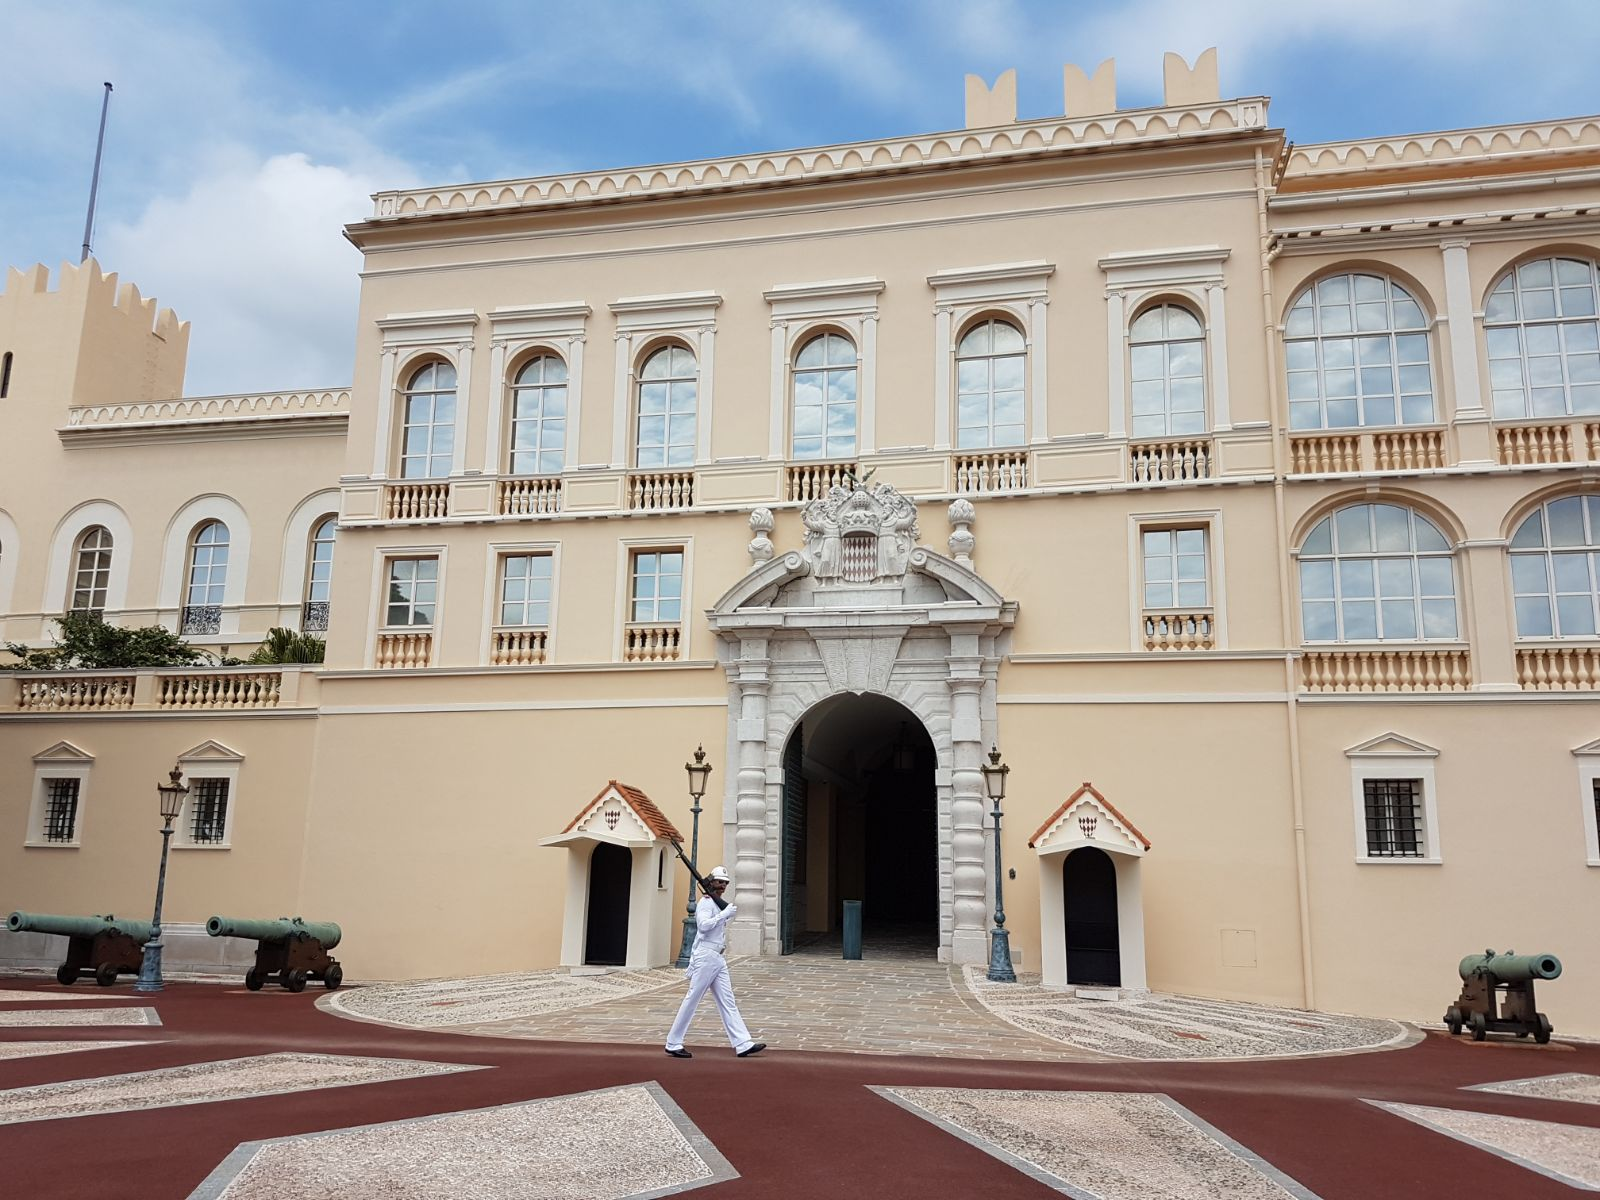 The palace in Monaco